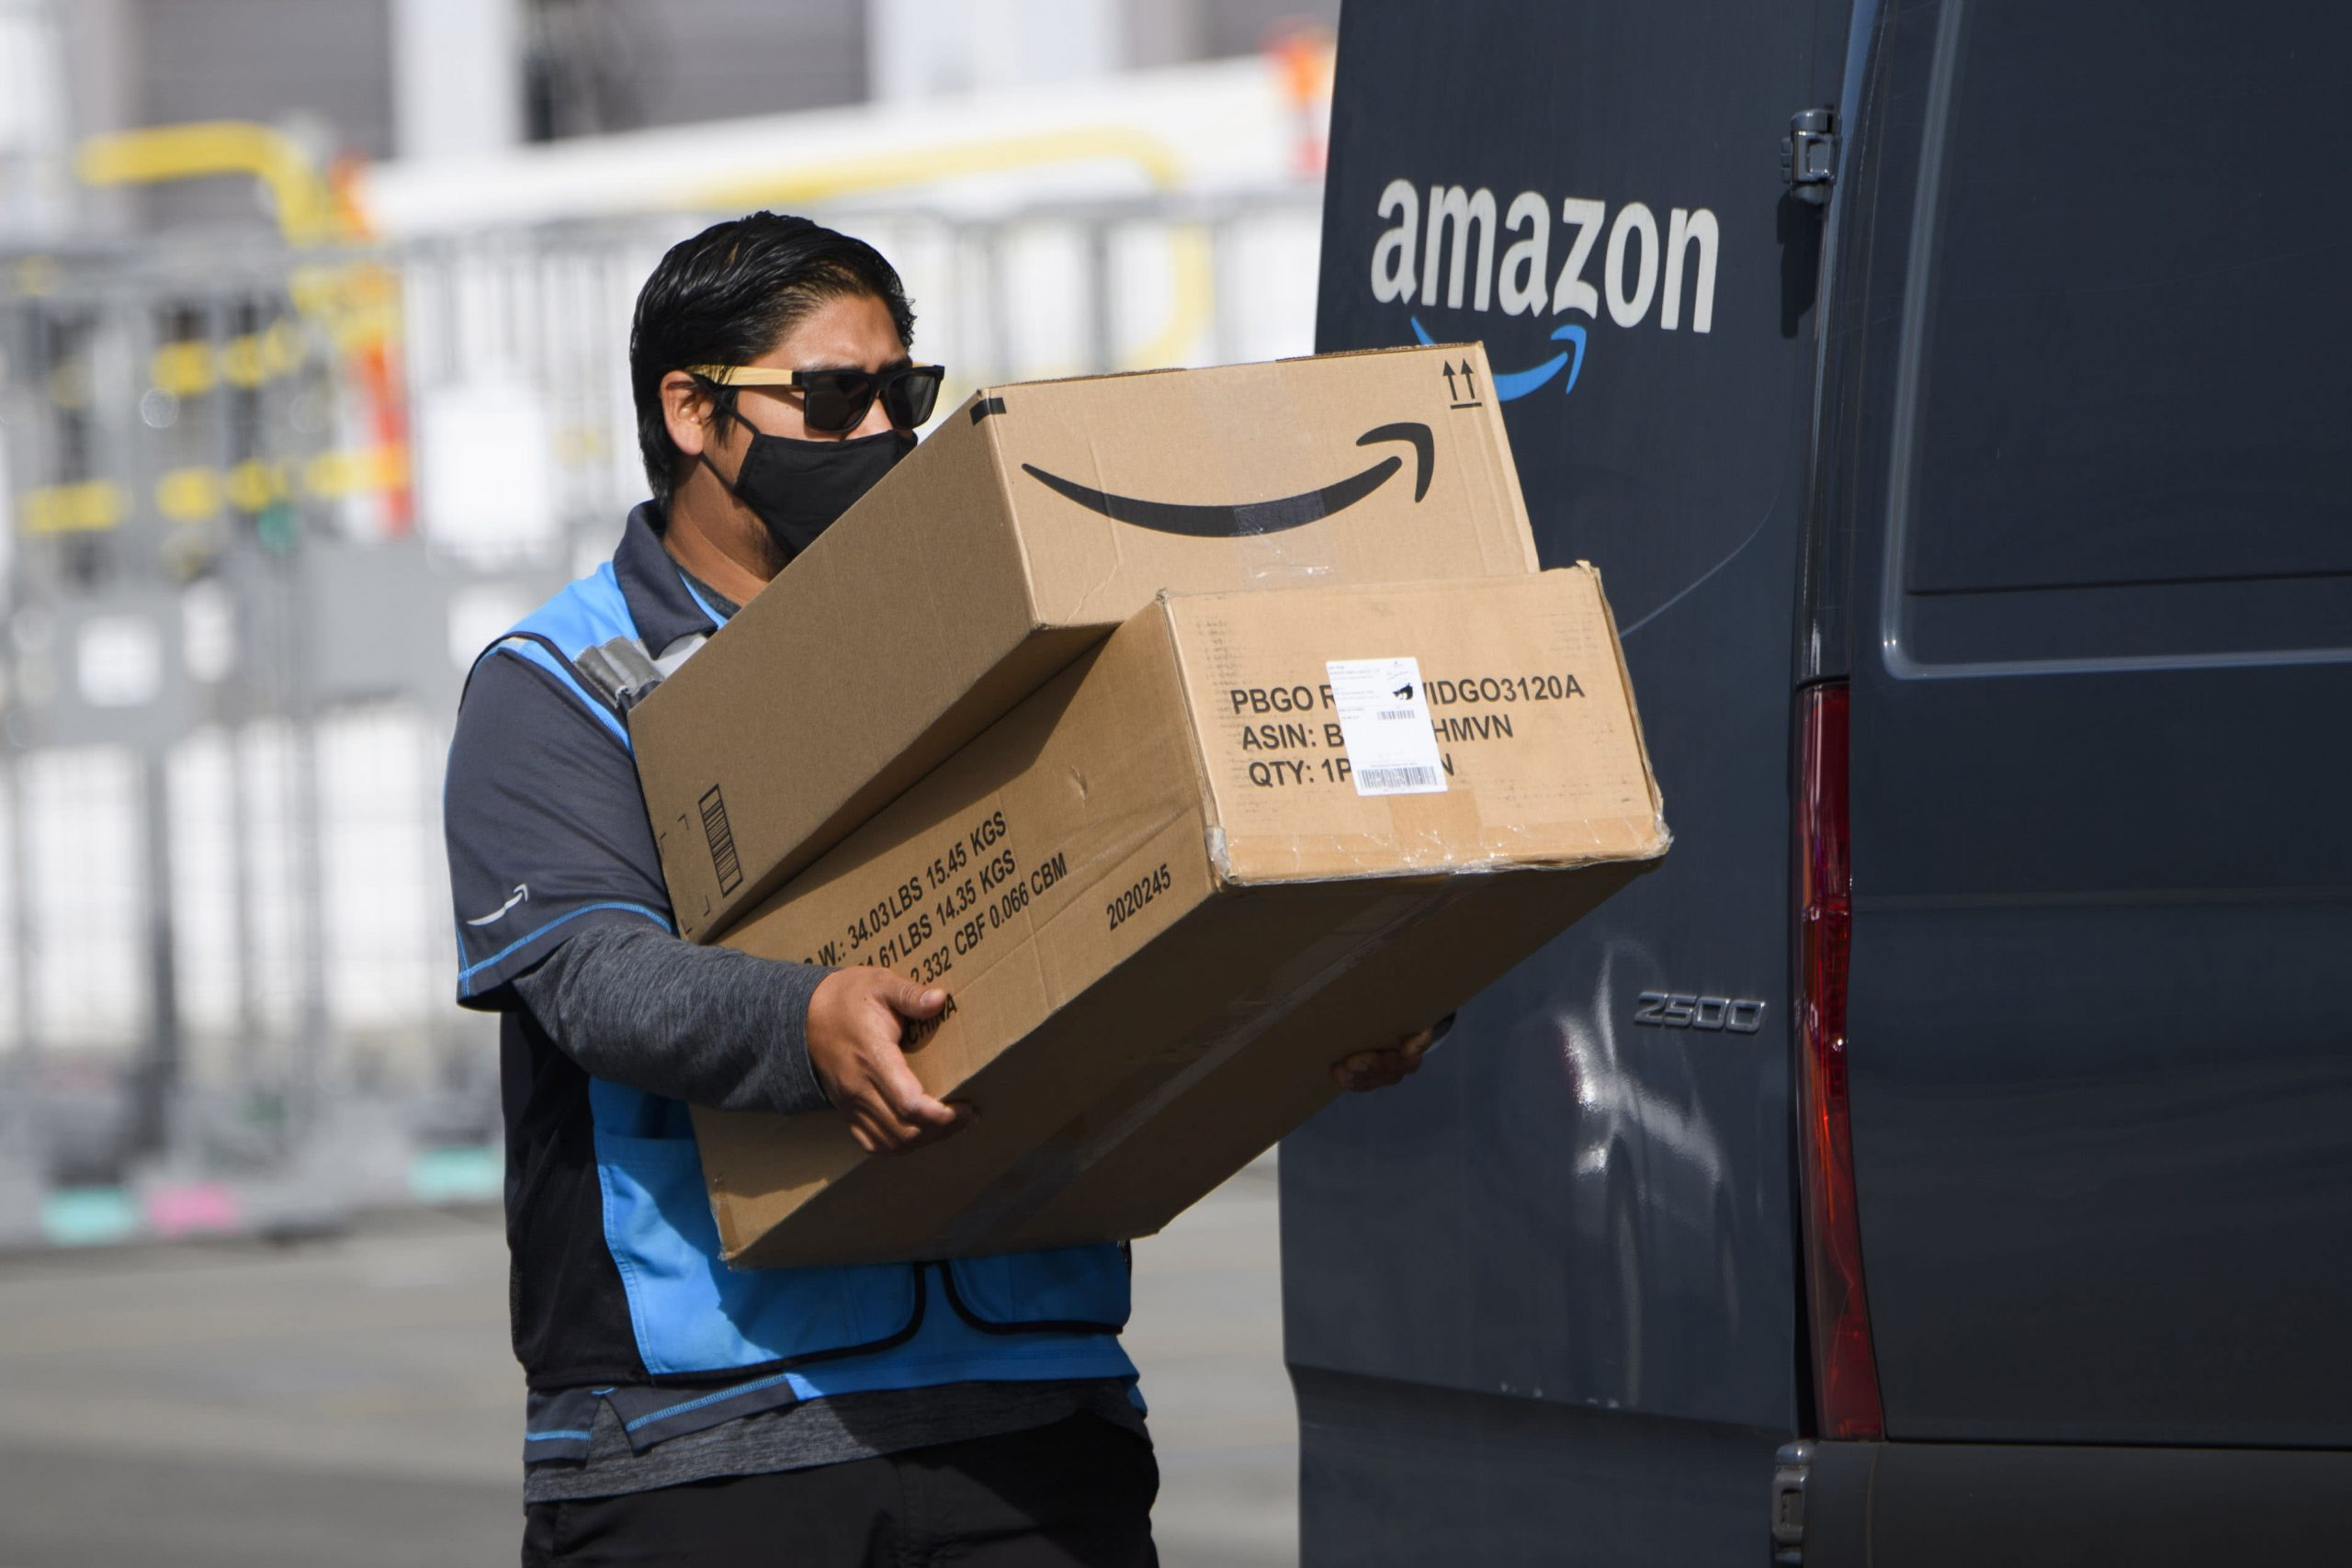 Amazon asks social media companies to help it root out fake reviews